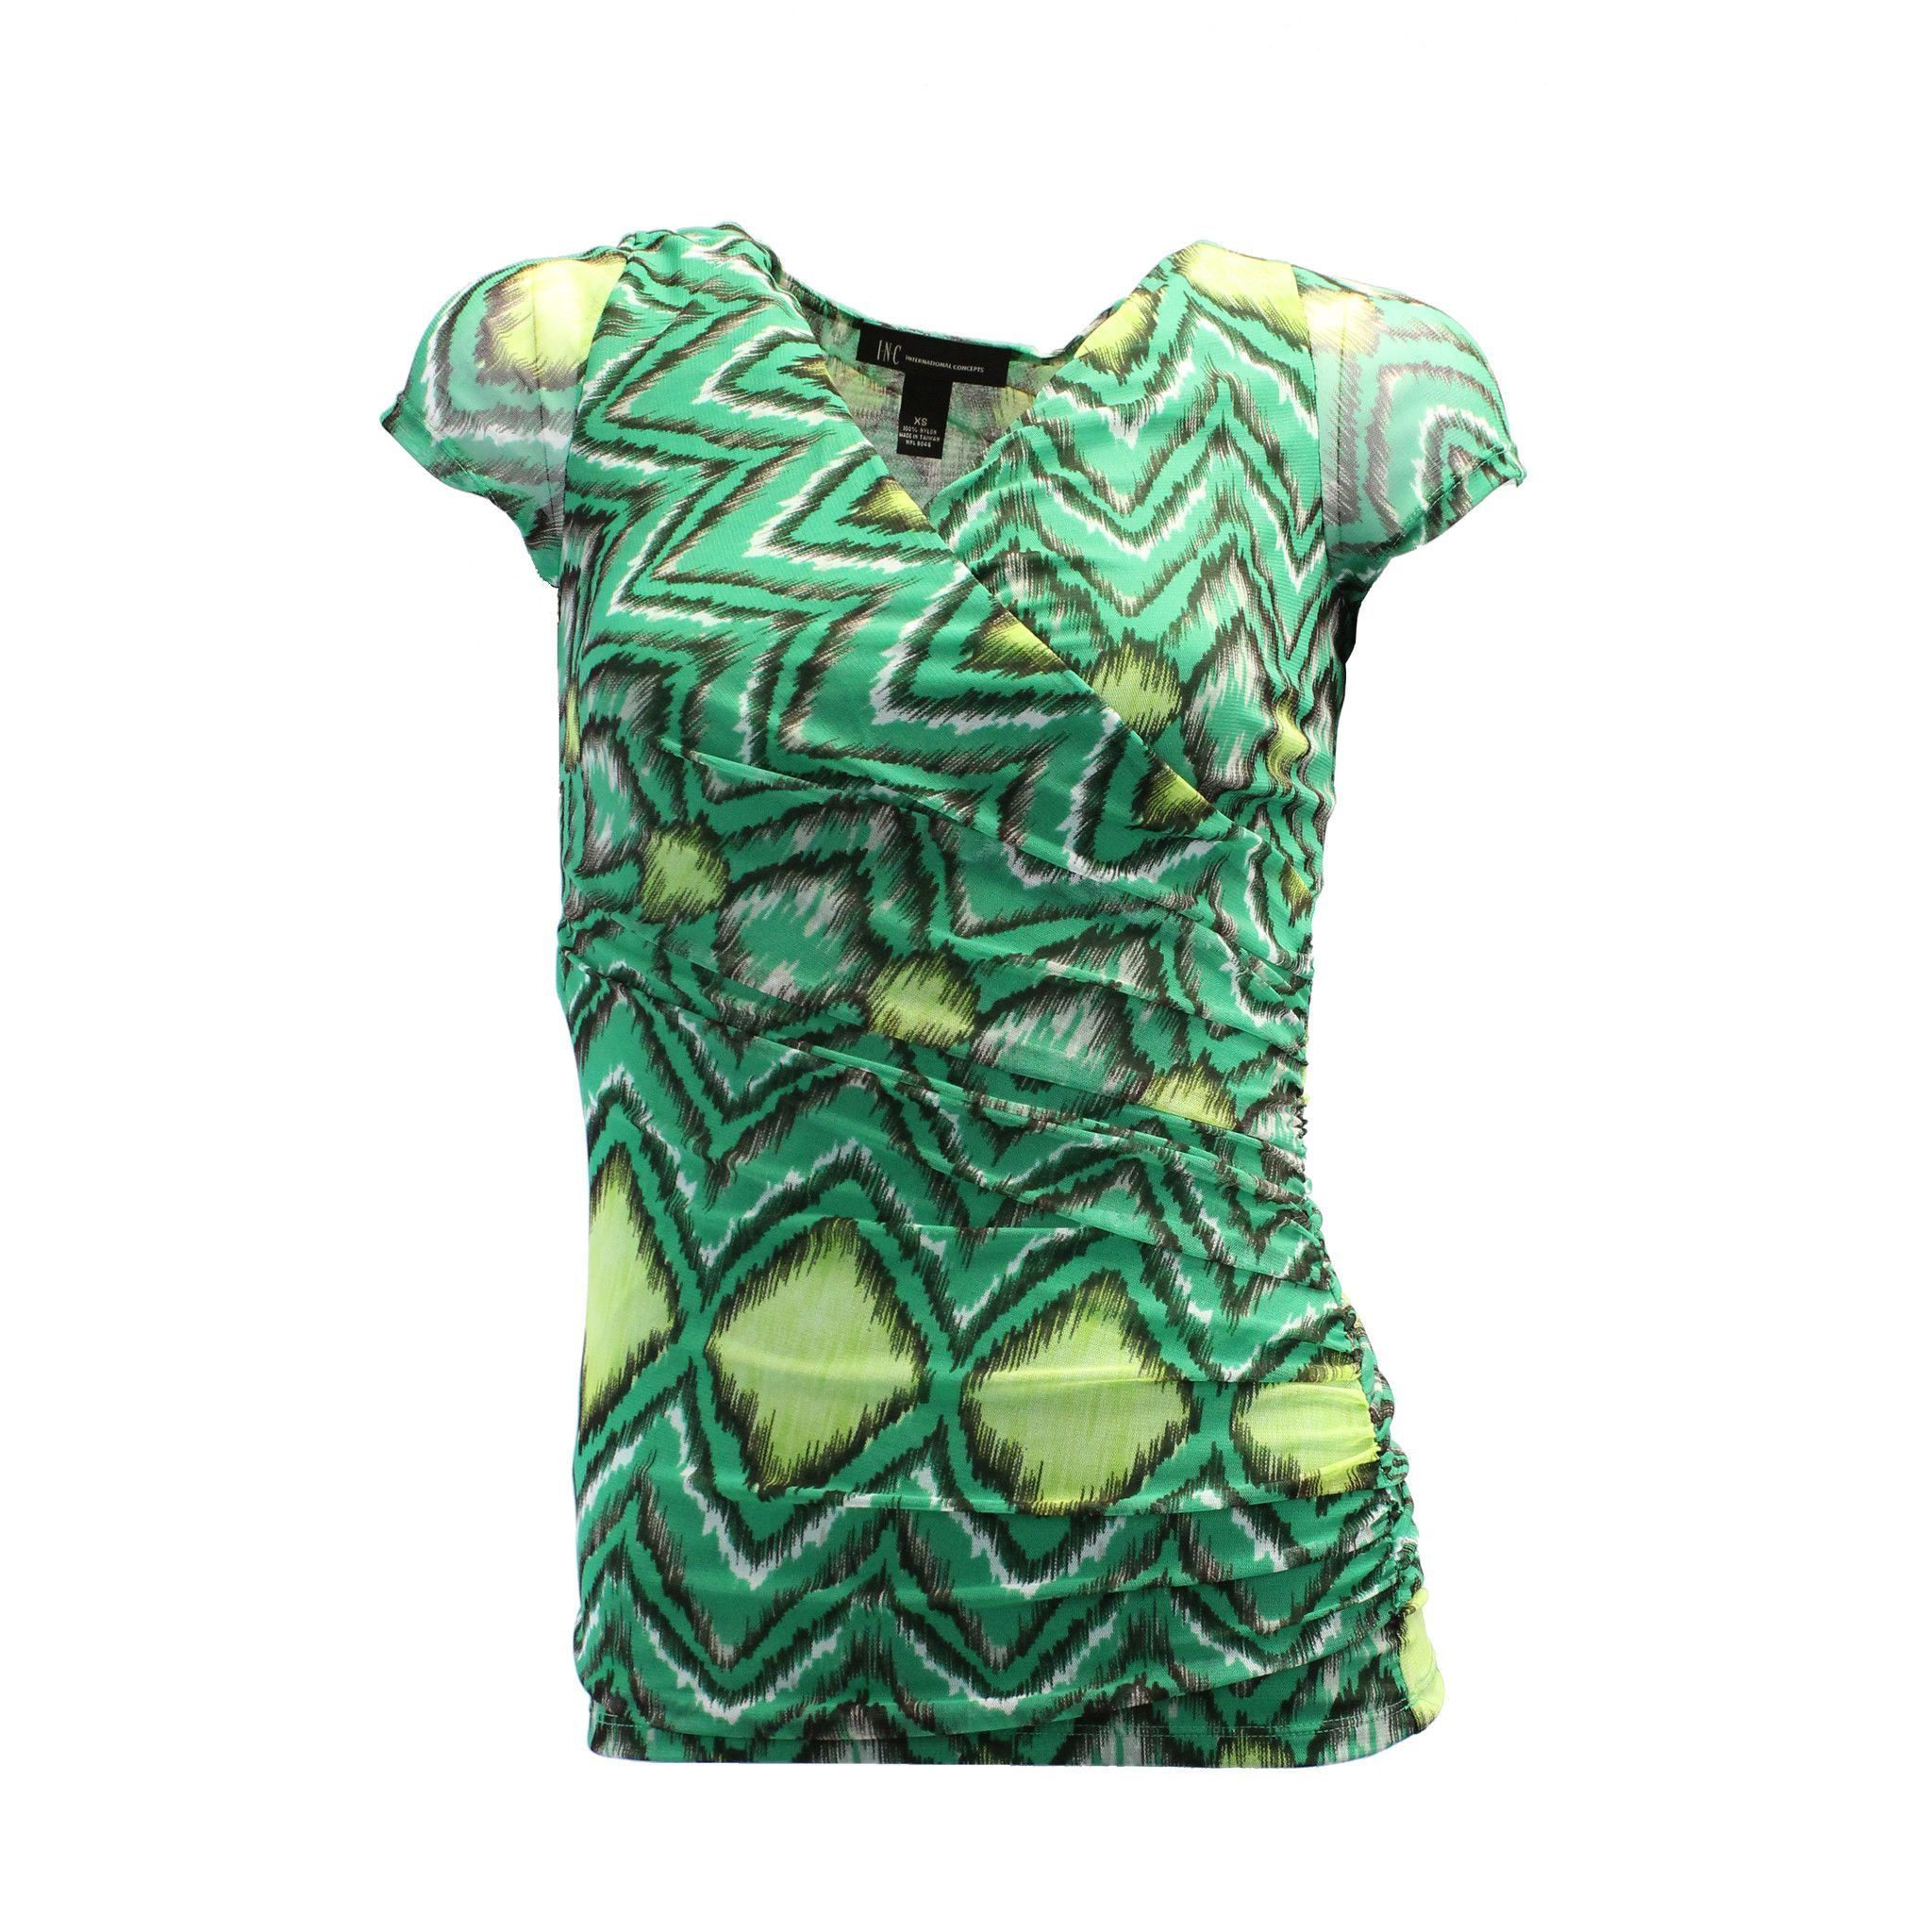 INC International Concepts Women's Blouse Short Sleeve Cowl X-small Green